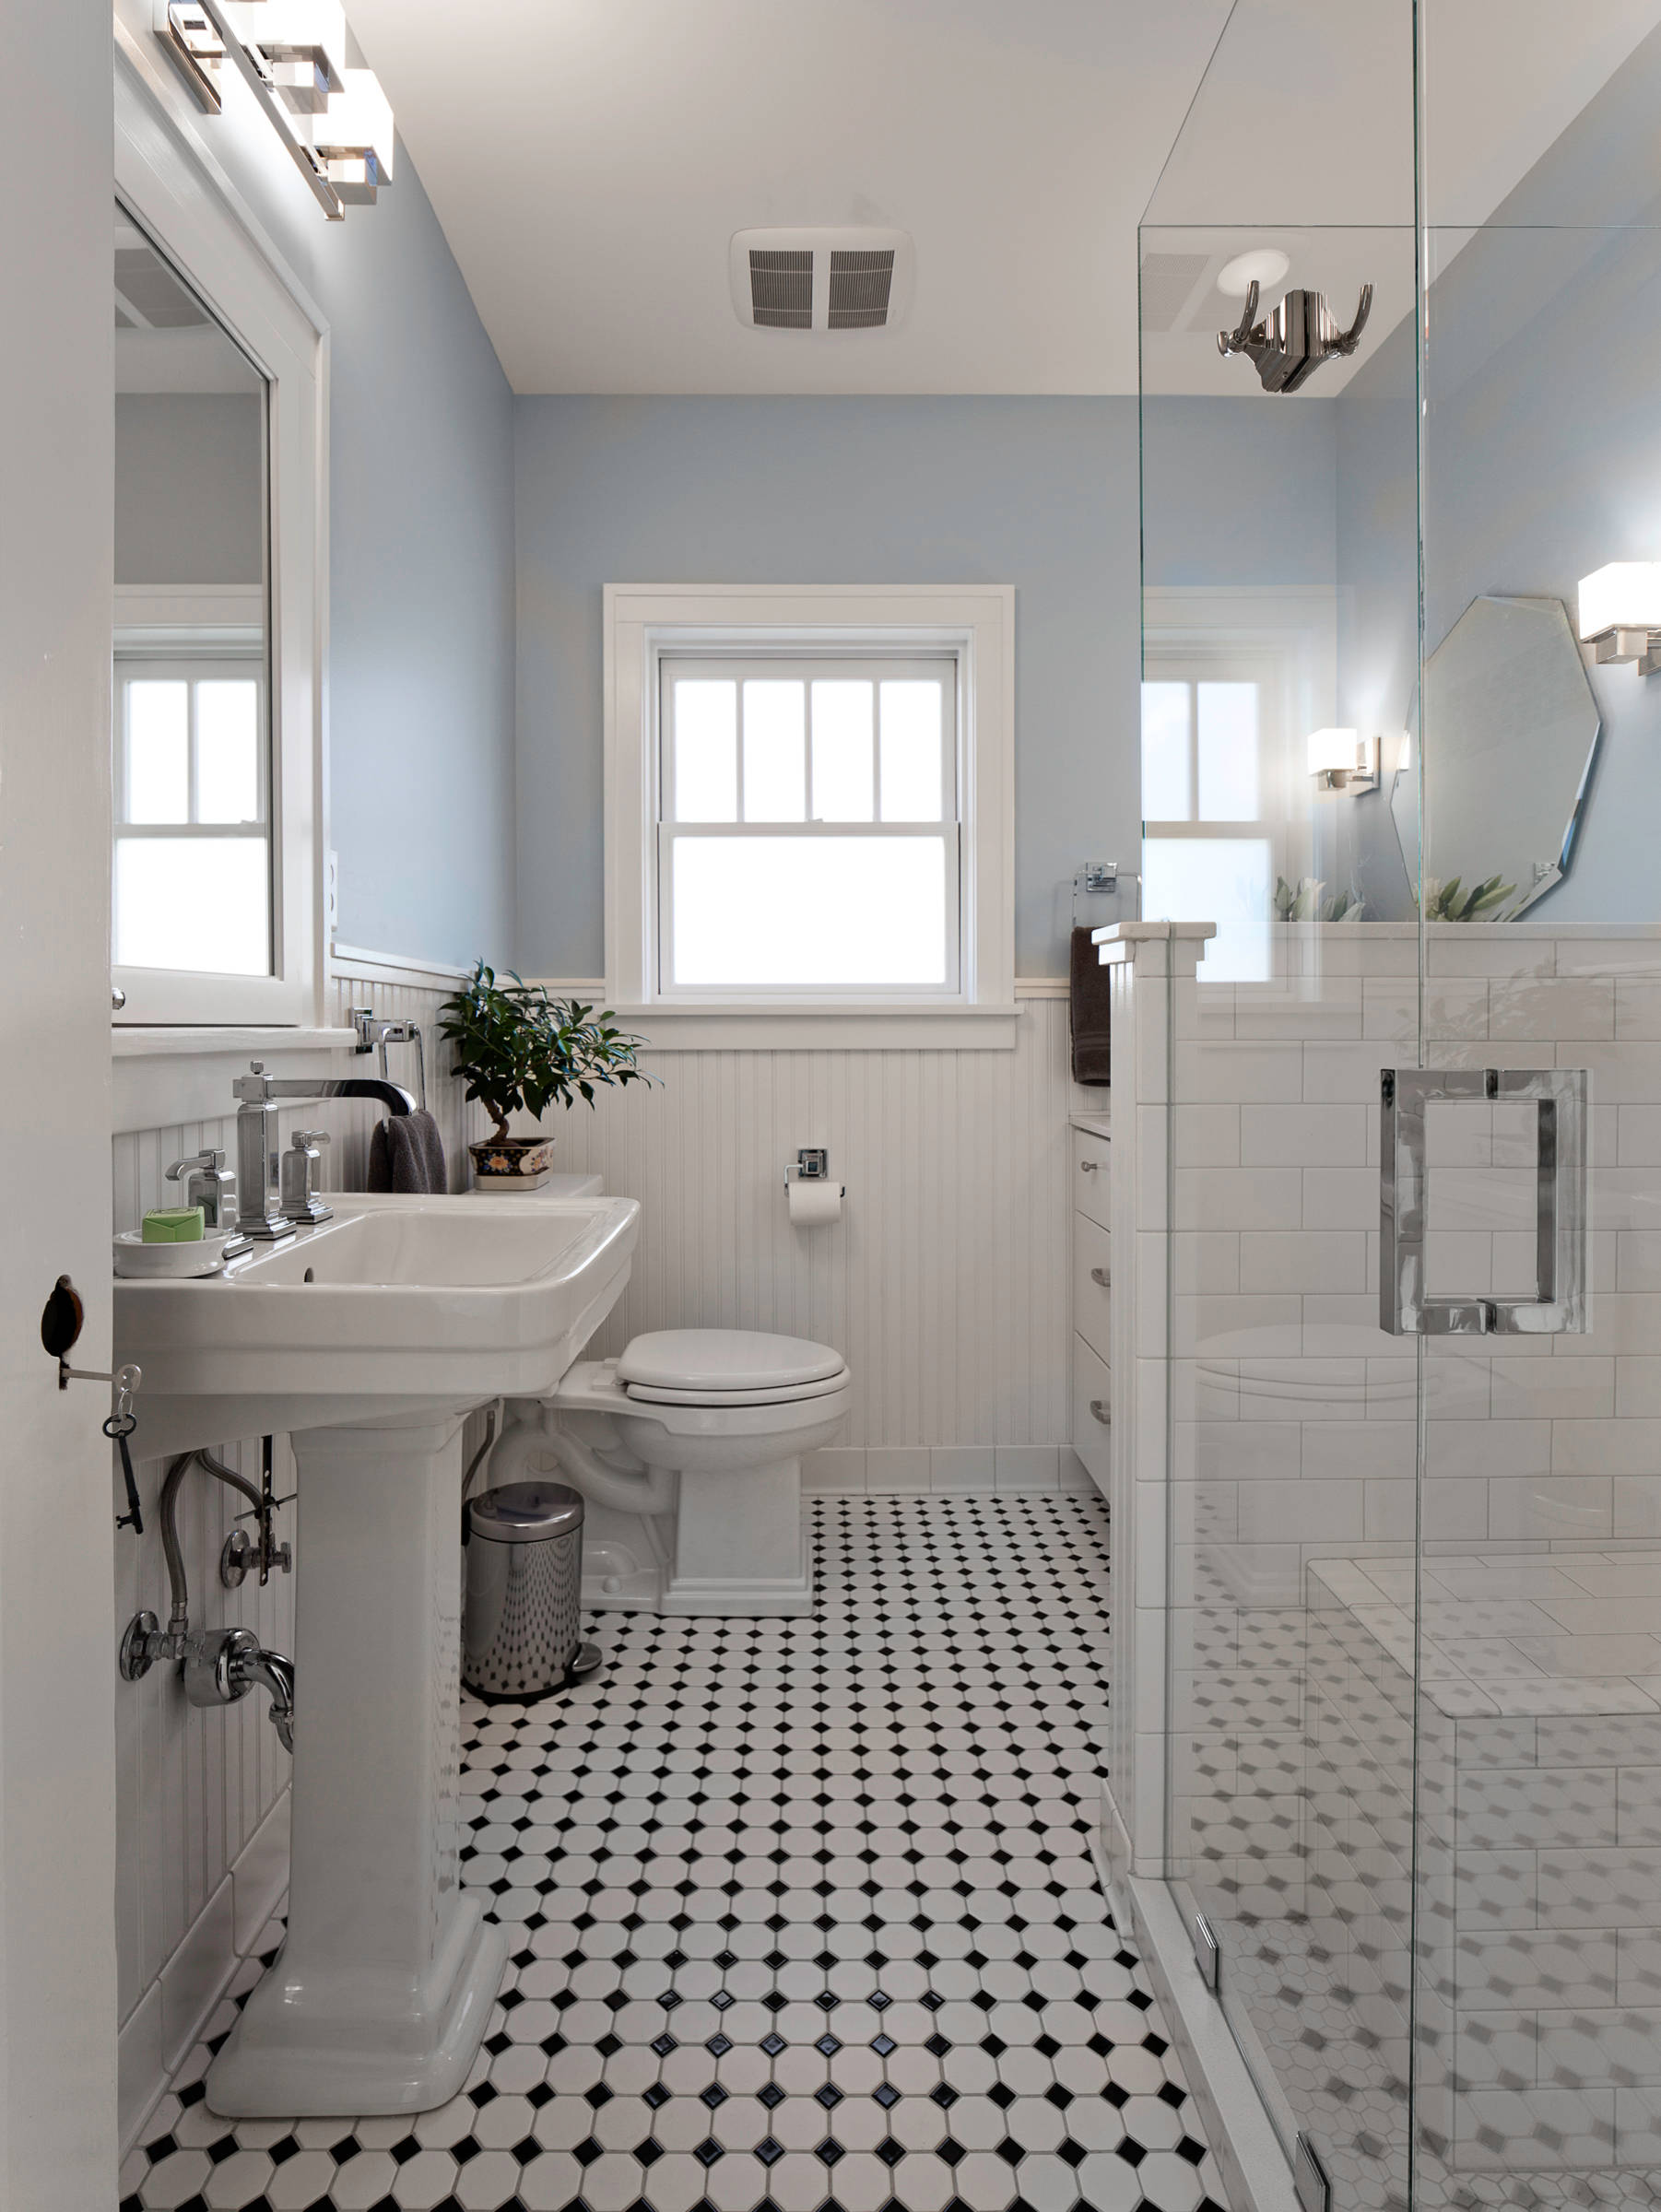 75 Beautiful Victorian Bathroom Pictures Ideas November 2020 Houzz